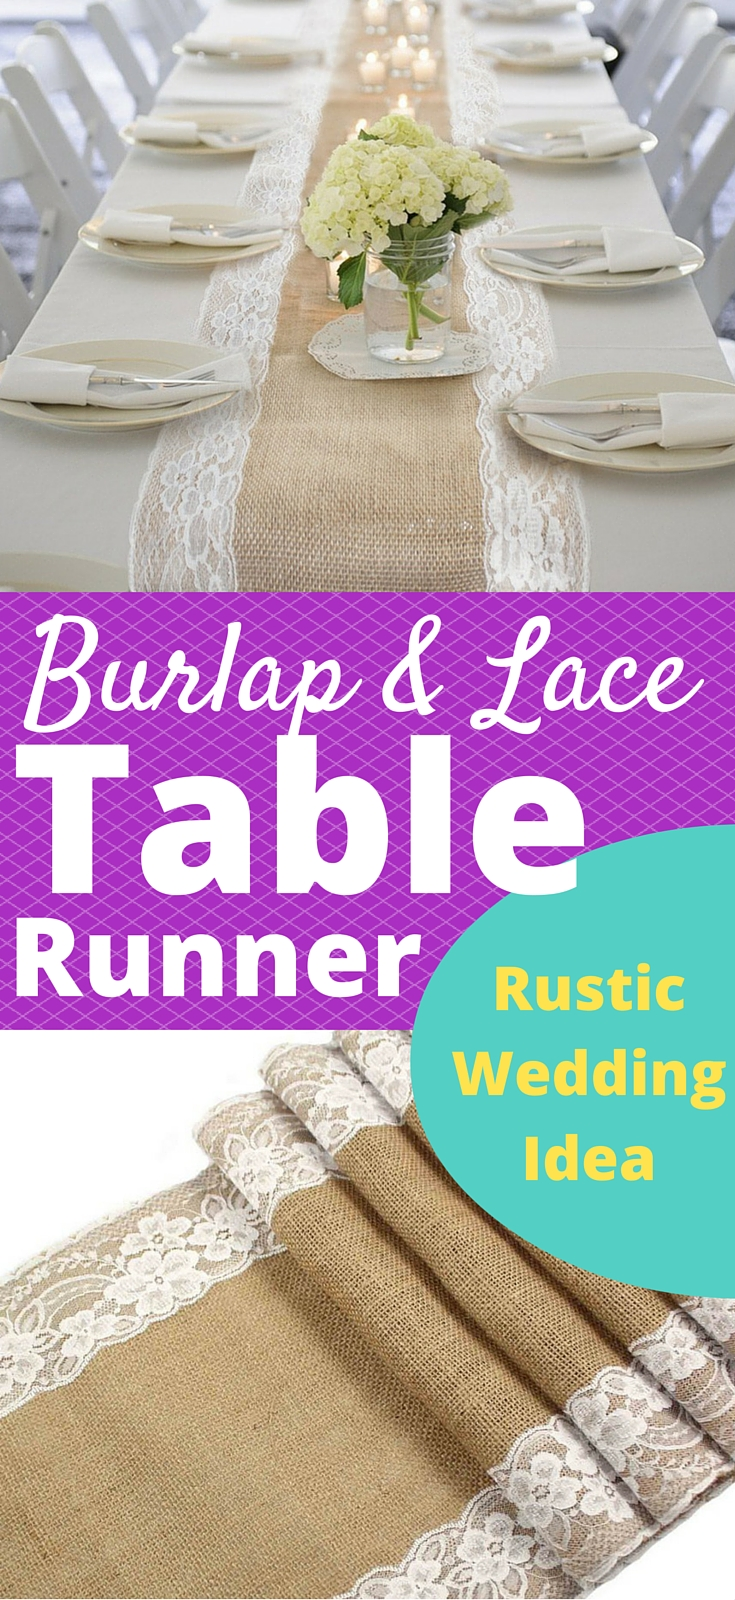 Burlap and Lace Rustic Wedding Reception Table Runner - This is a simple yet beautiful idea for the dining table decorations at a country or beach wedding. I love the floral pattern on the white lace. These runners will look great on a round or rectangular table, and they can definitely be saved and used as table decor at home! Also, you have to check out the matching silverware holder which will make your place settings look amazing!